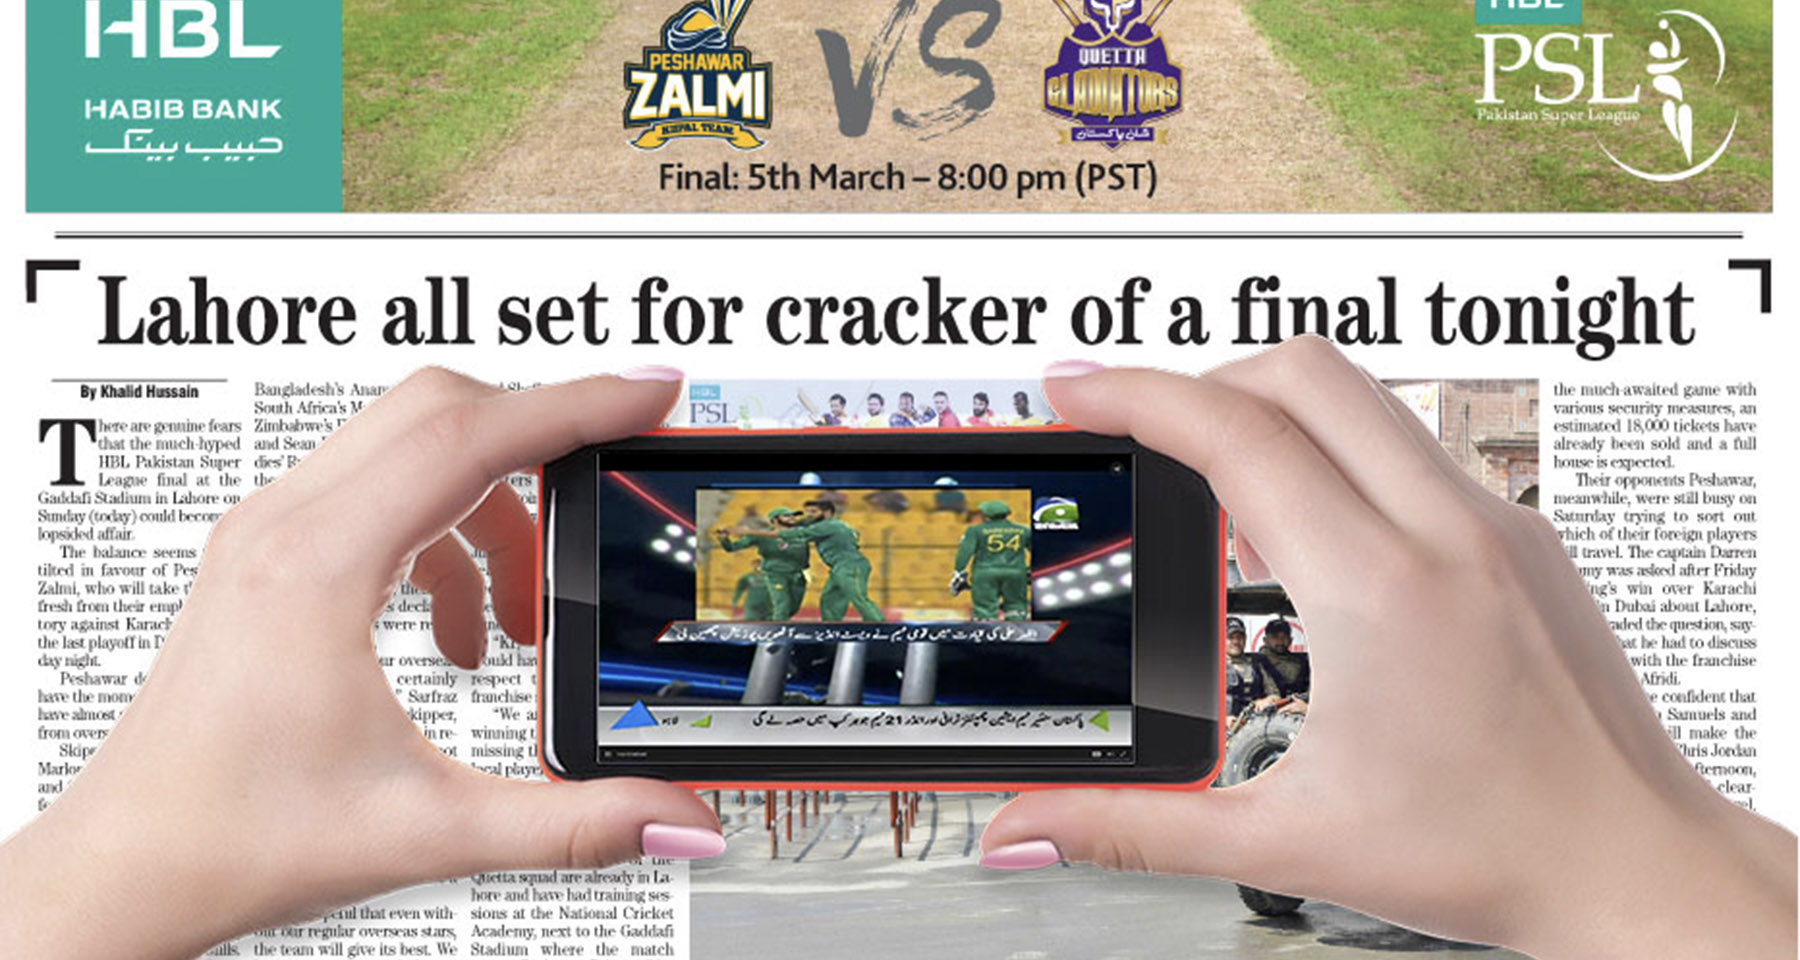 Jang Real cricket AR app connects print readers to digital content, brings in revenue